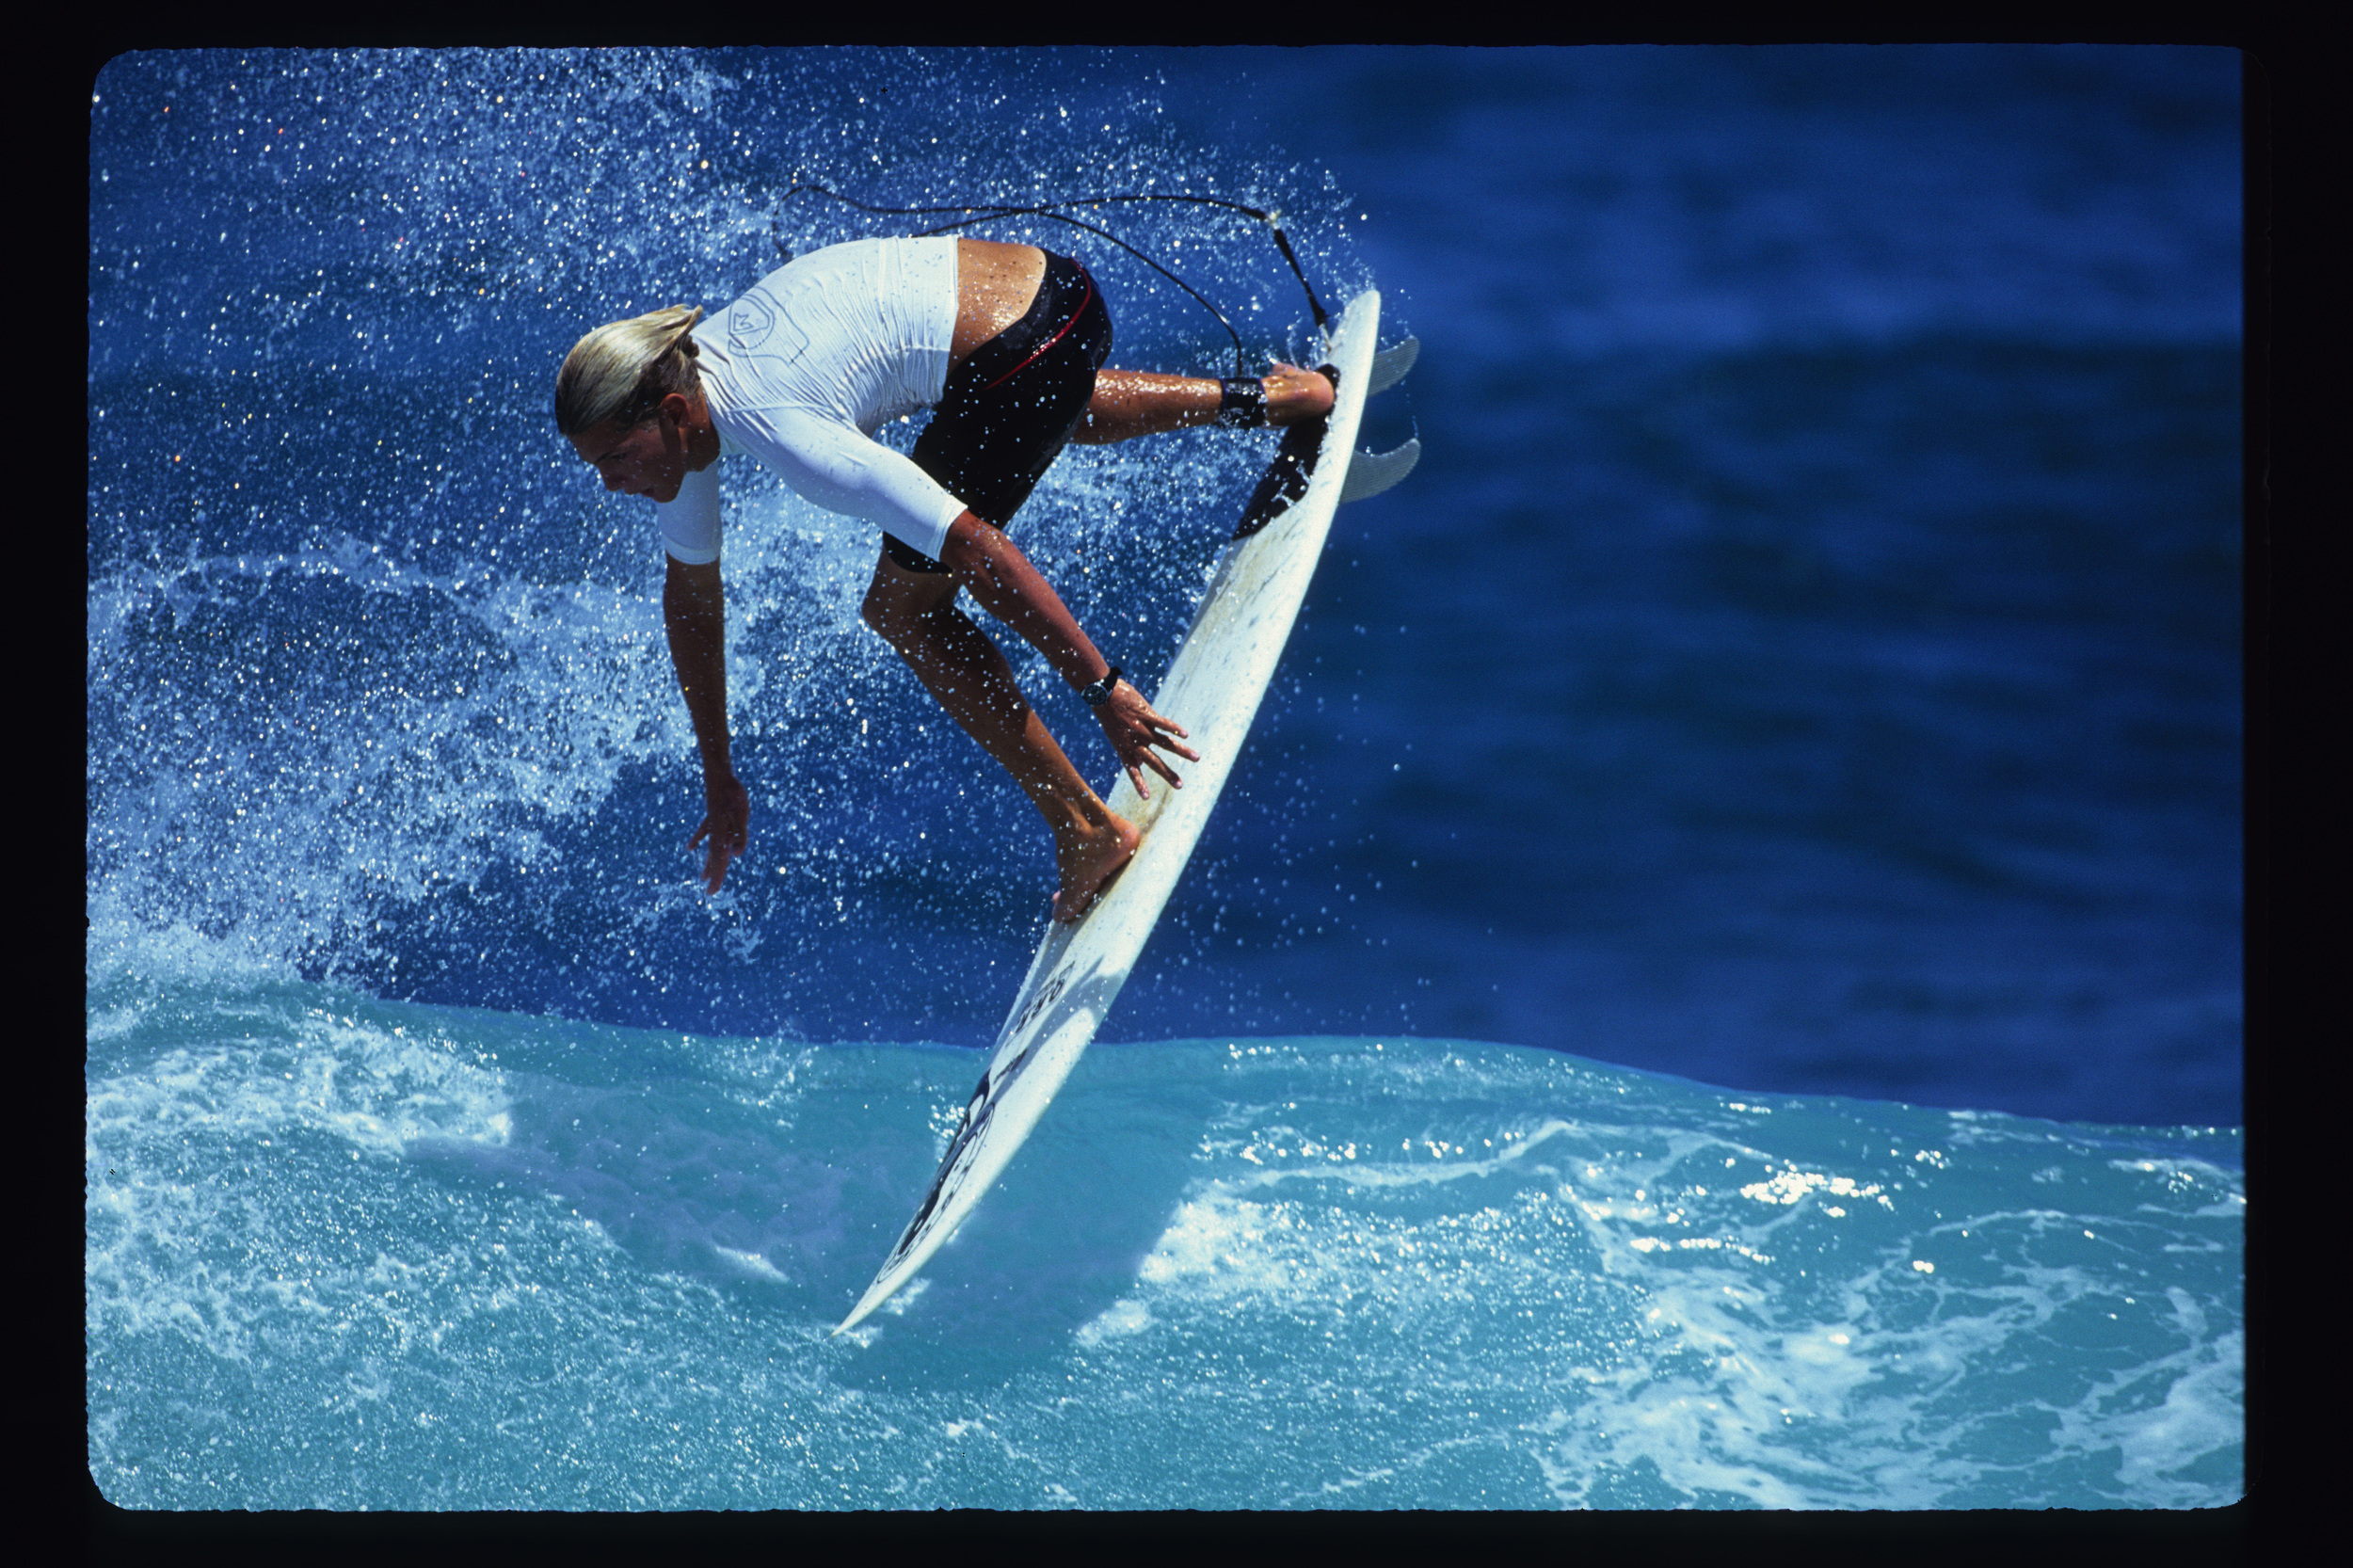 andy irons_rocky point_early 90's_©hank foto_5286 copy 2.jpg